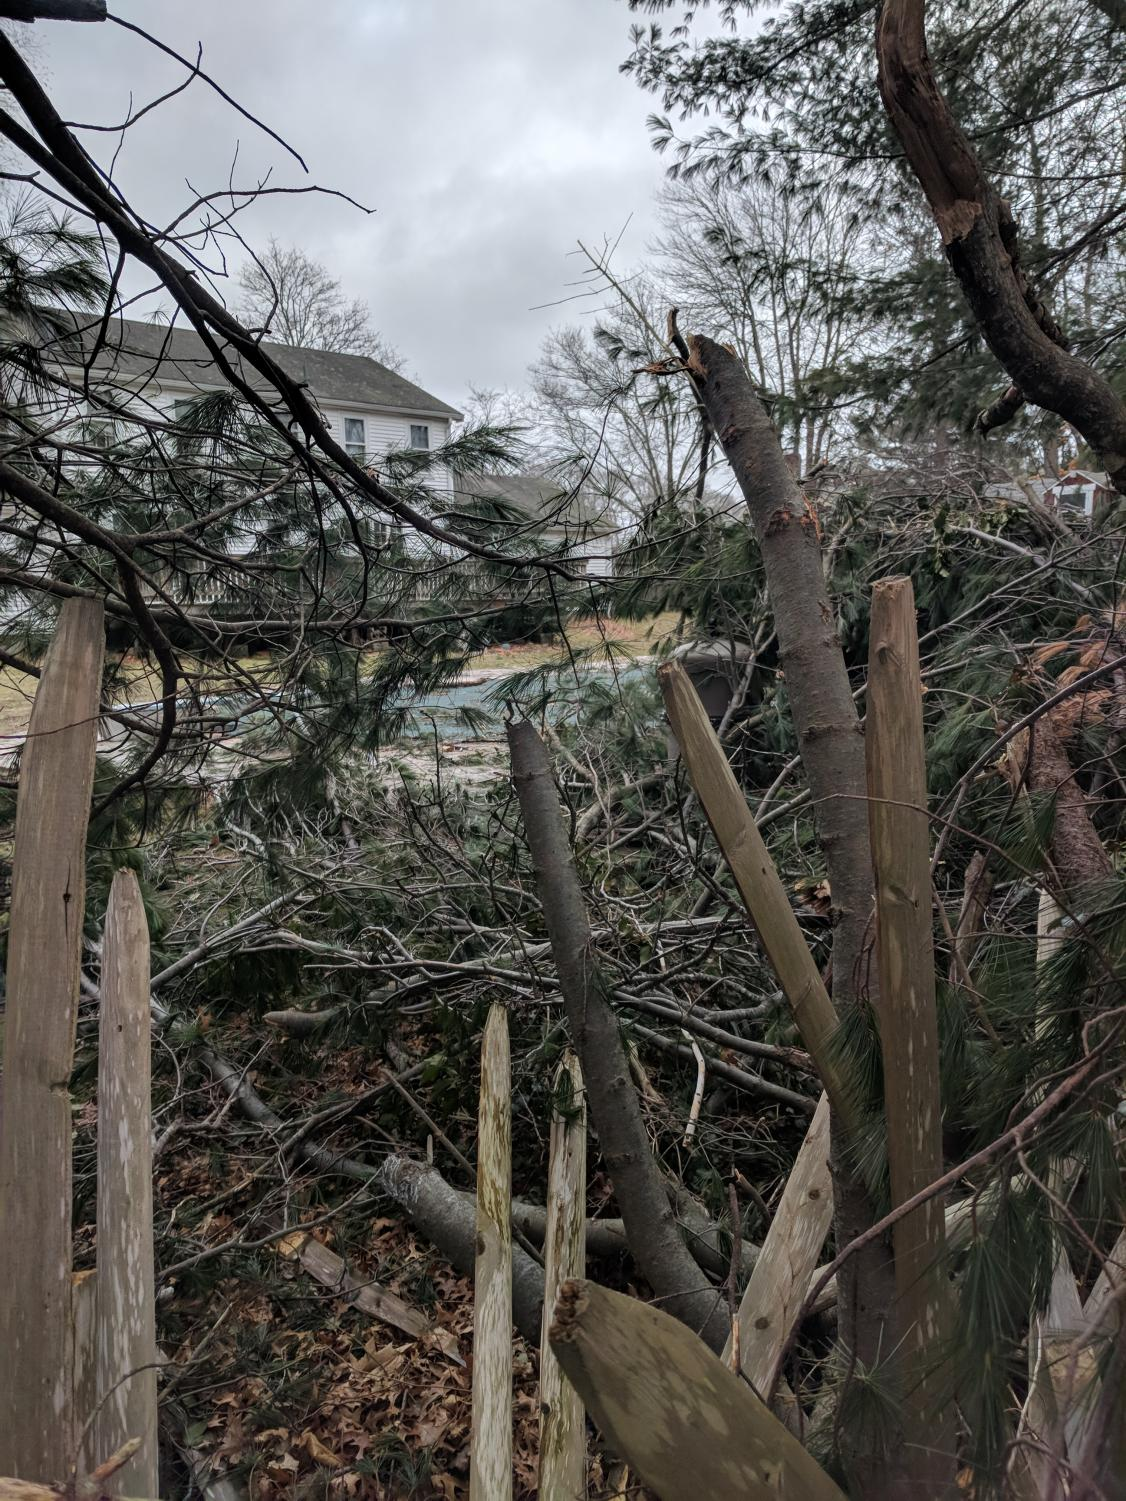 A broken fence and downed trees litter Ms. Fennelly's yard before spring cleanup begins.